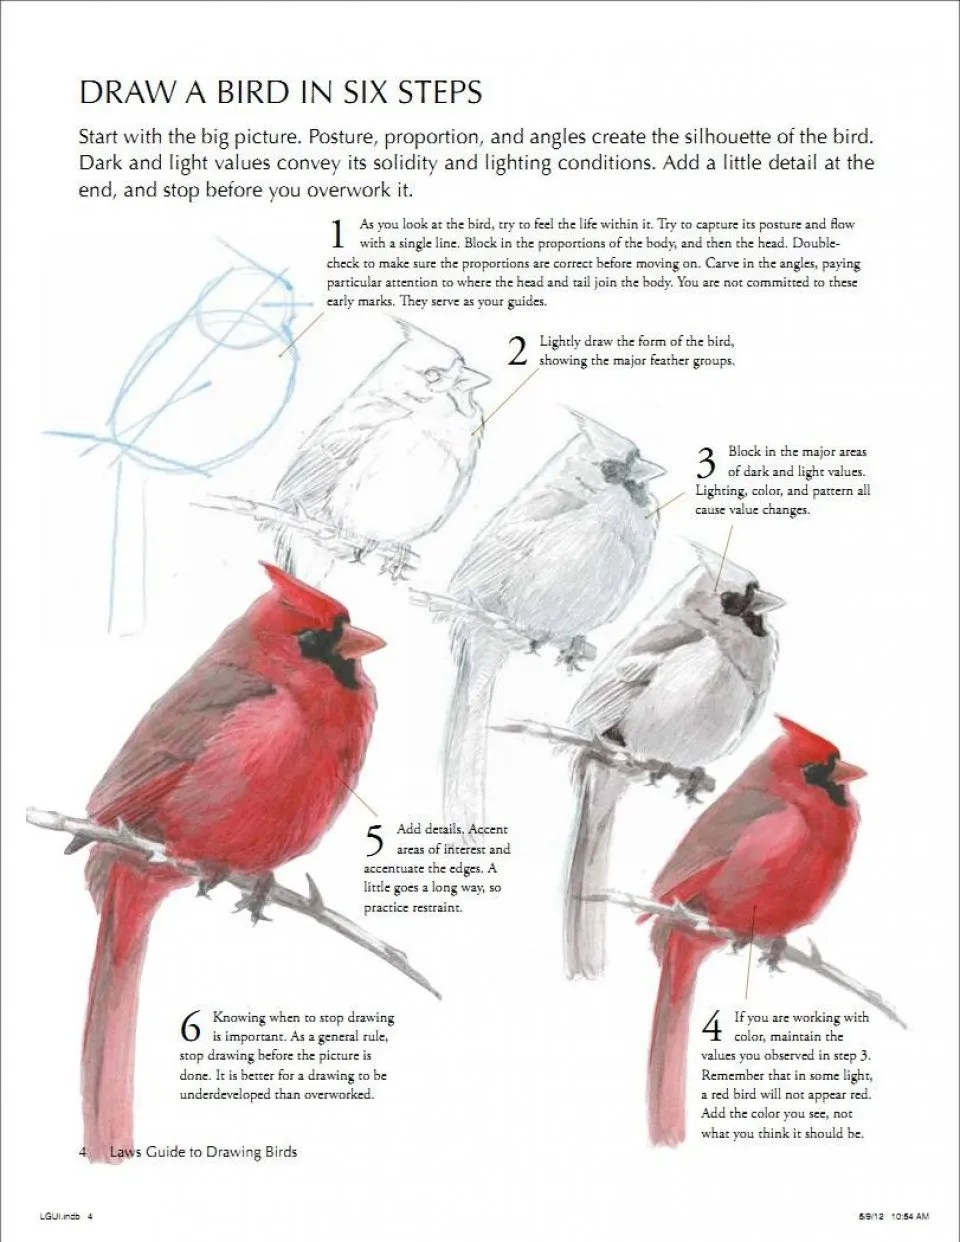 The Laws Guide To Drawing Birds John Muir Laws David